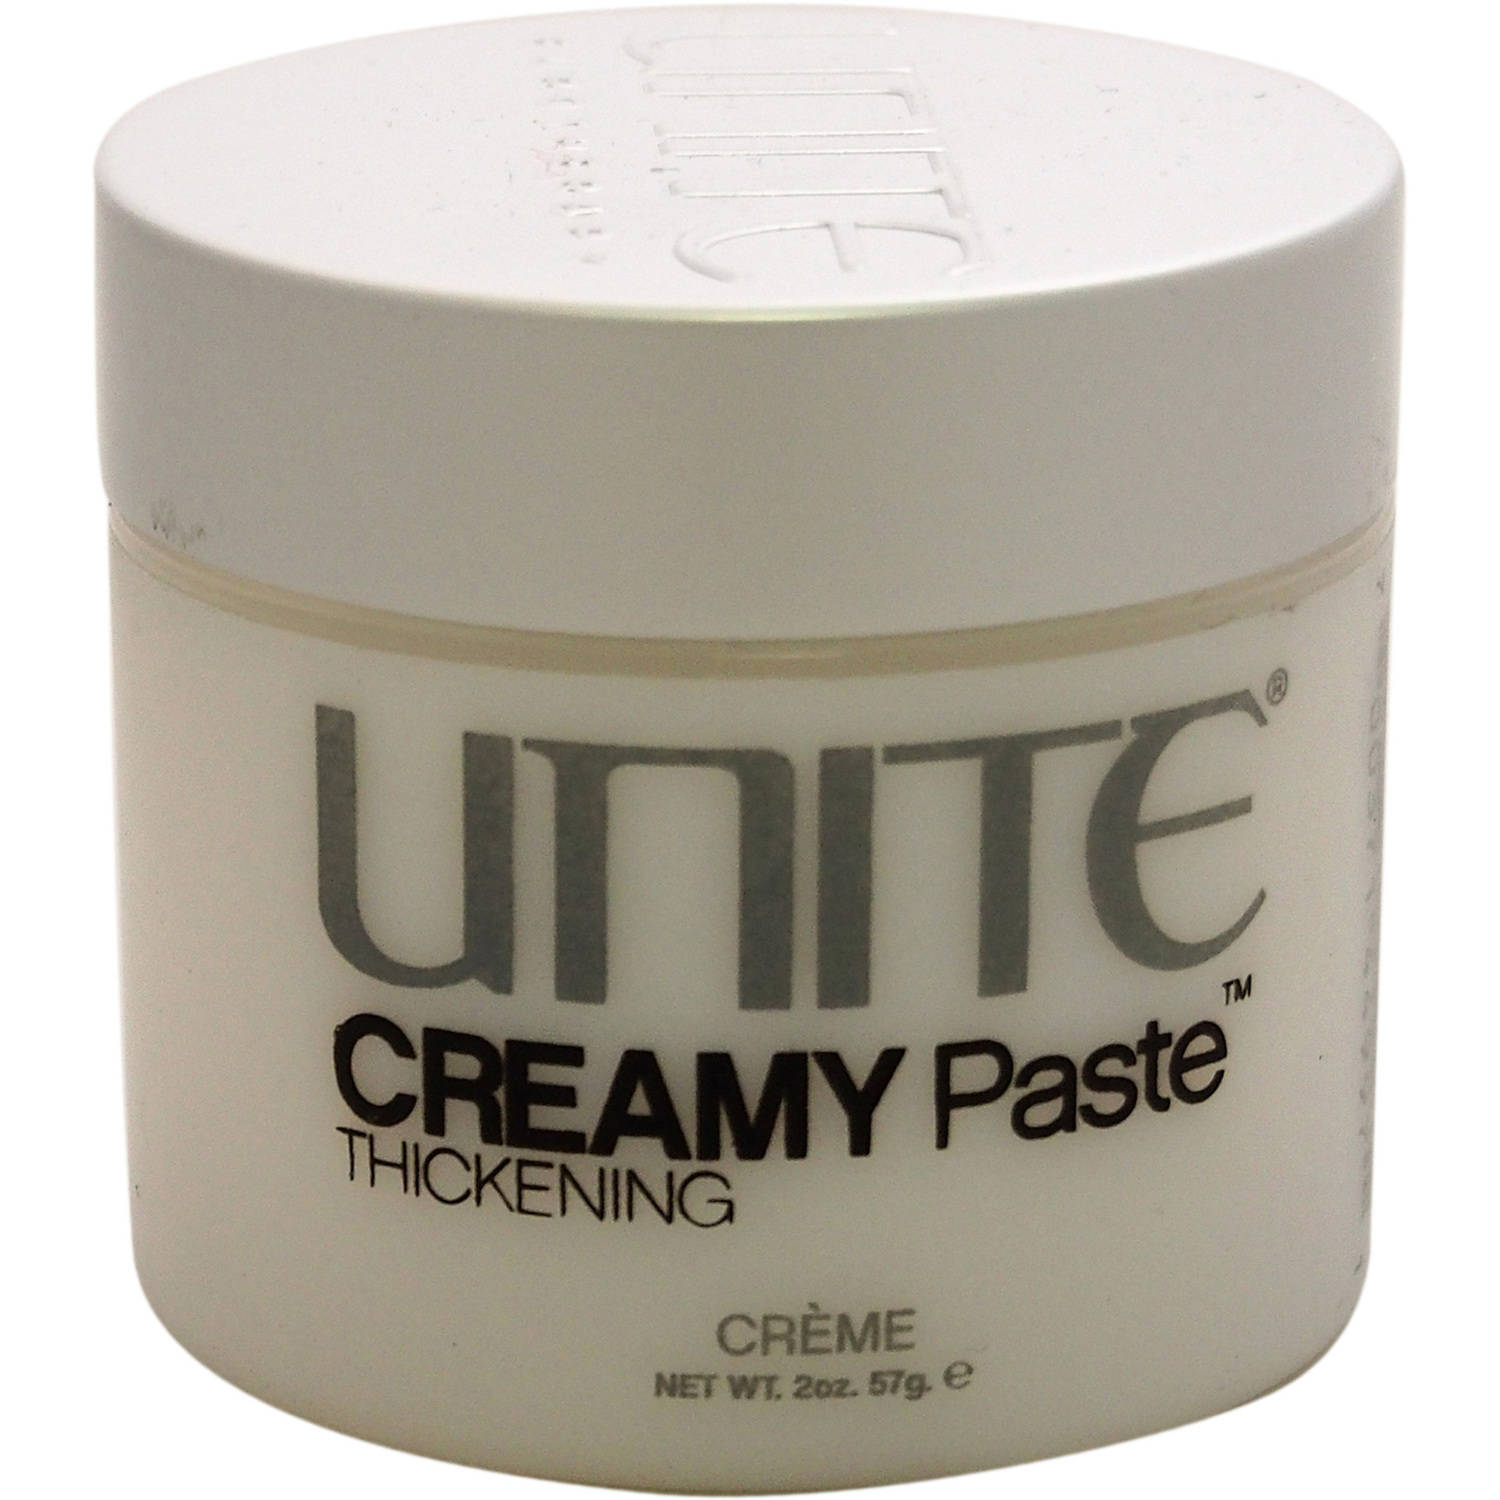 Creamy Paste Thickening by Unite for Unisex, 2 oz